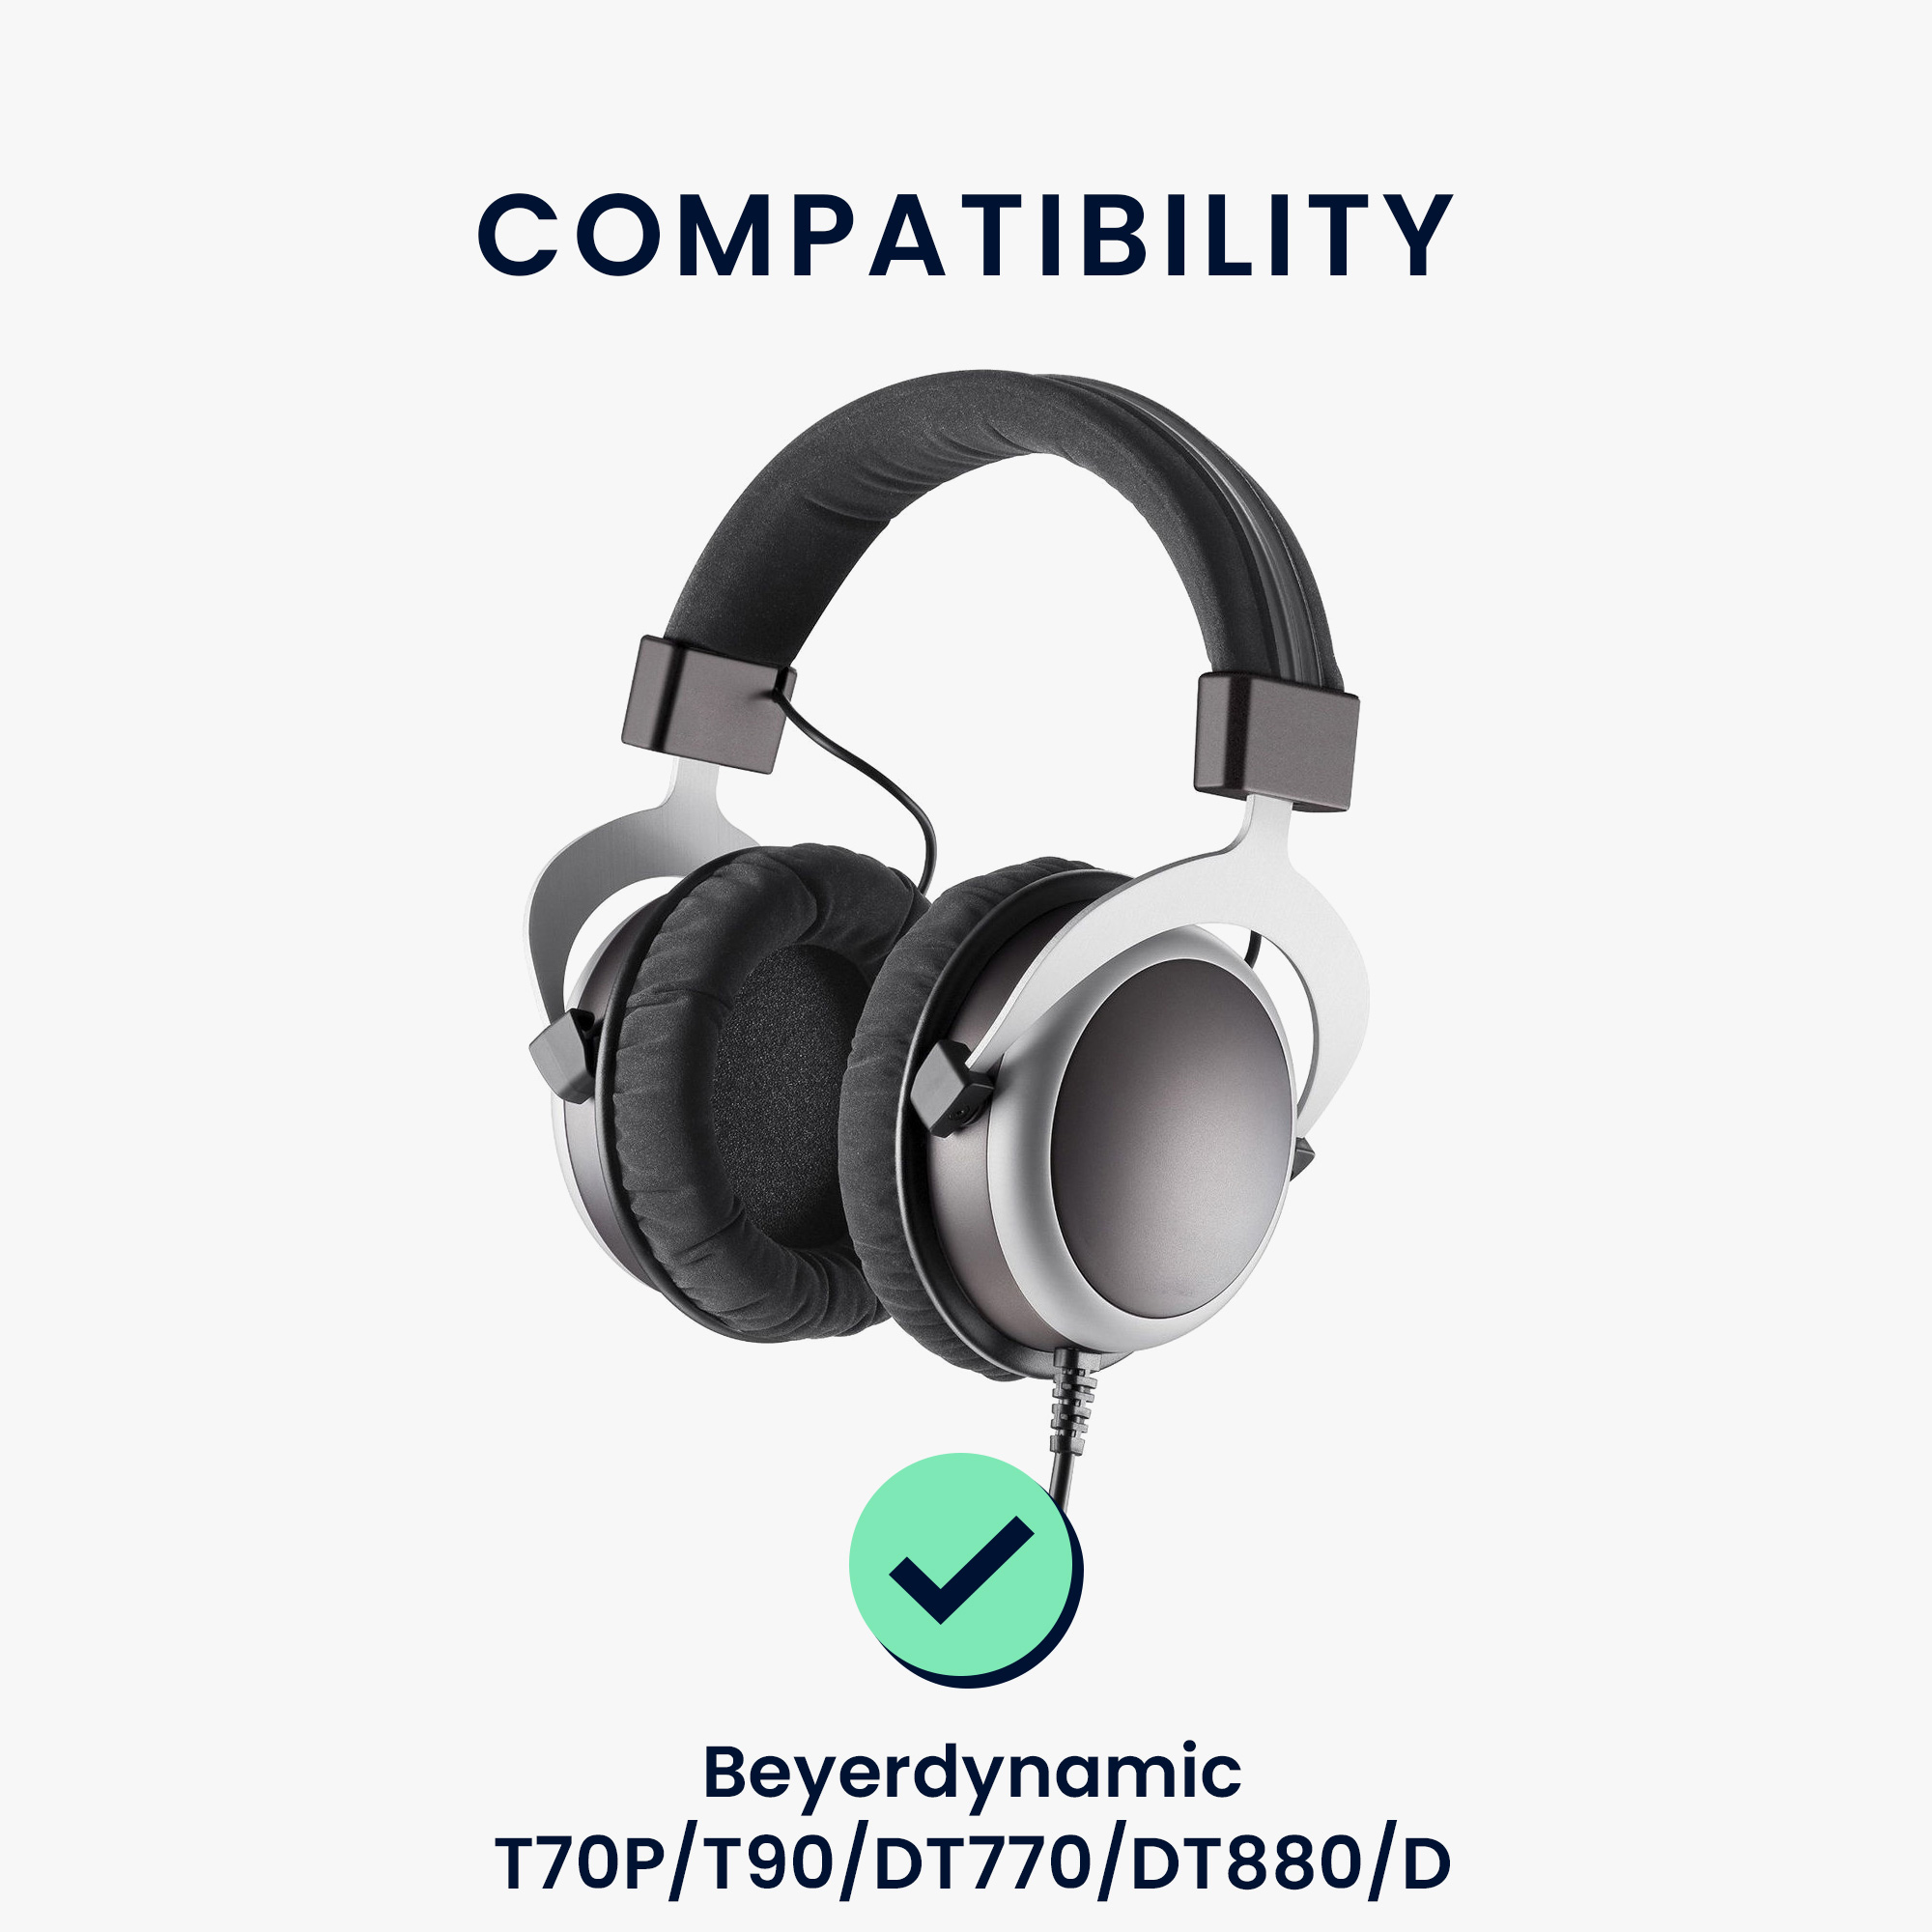 PU Leather Replacement Ear Pads for Over-Ear Headphones Black kwmobile 2X Earpads for Sony MDR-V700 DJ//V500 DJ//Z700 DJ//XD900